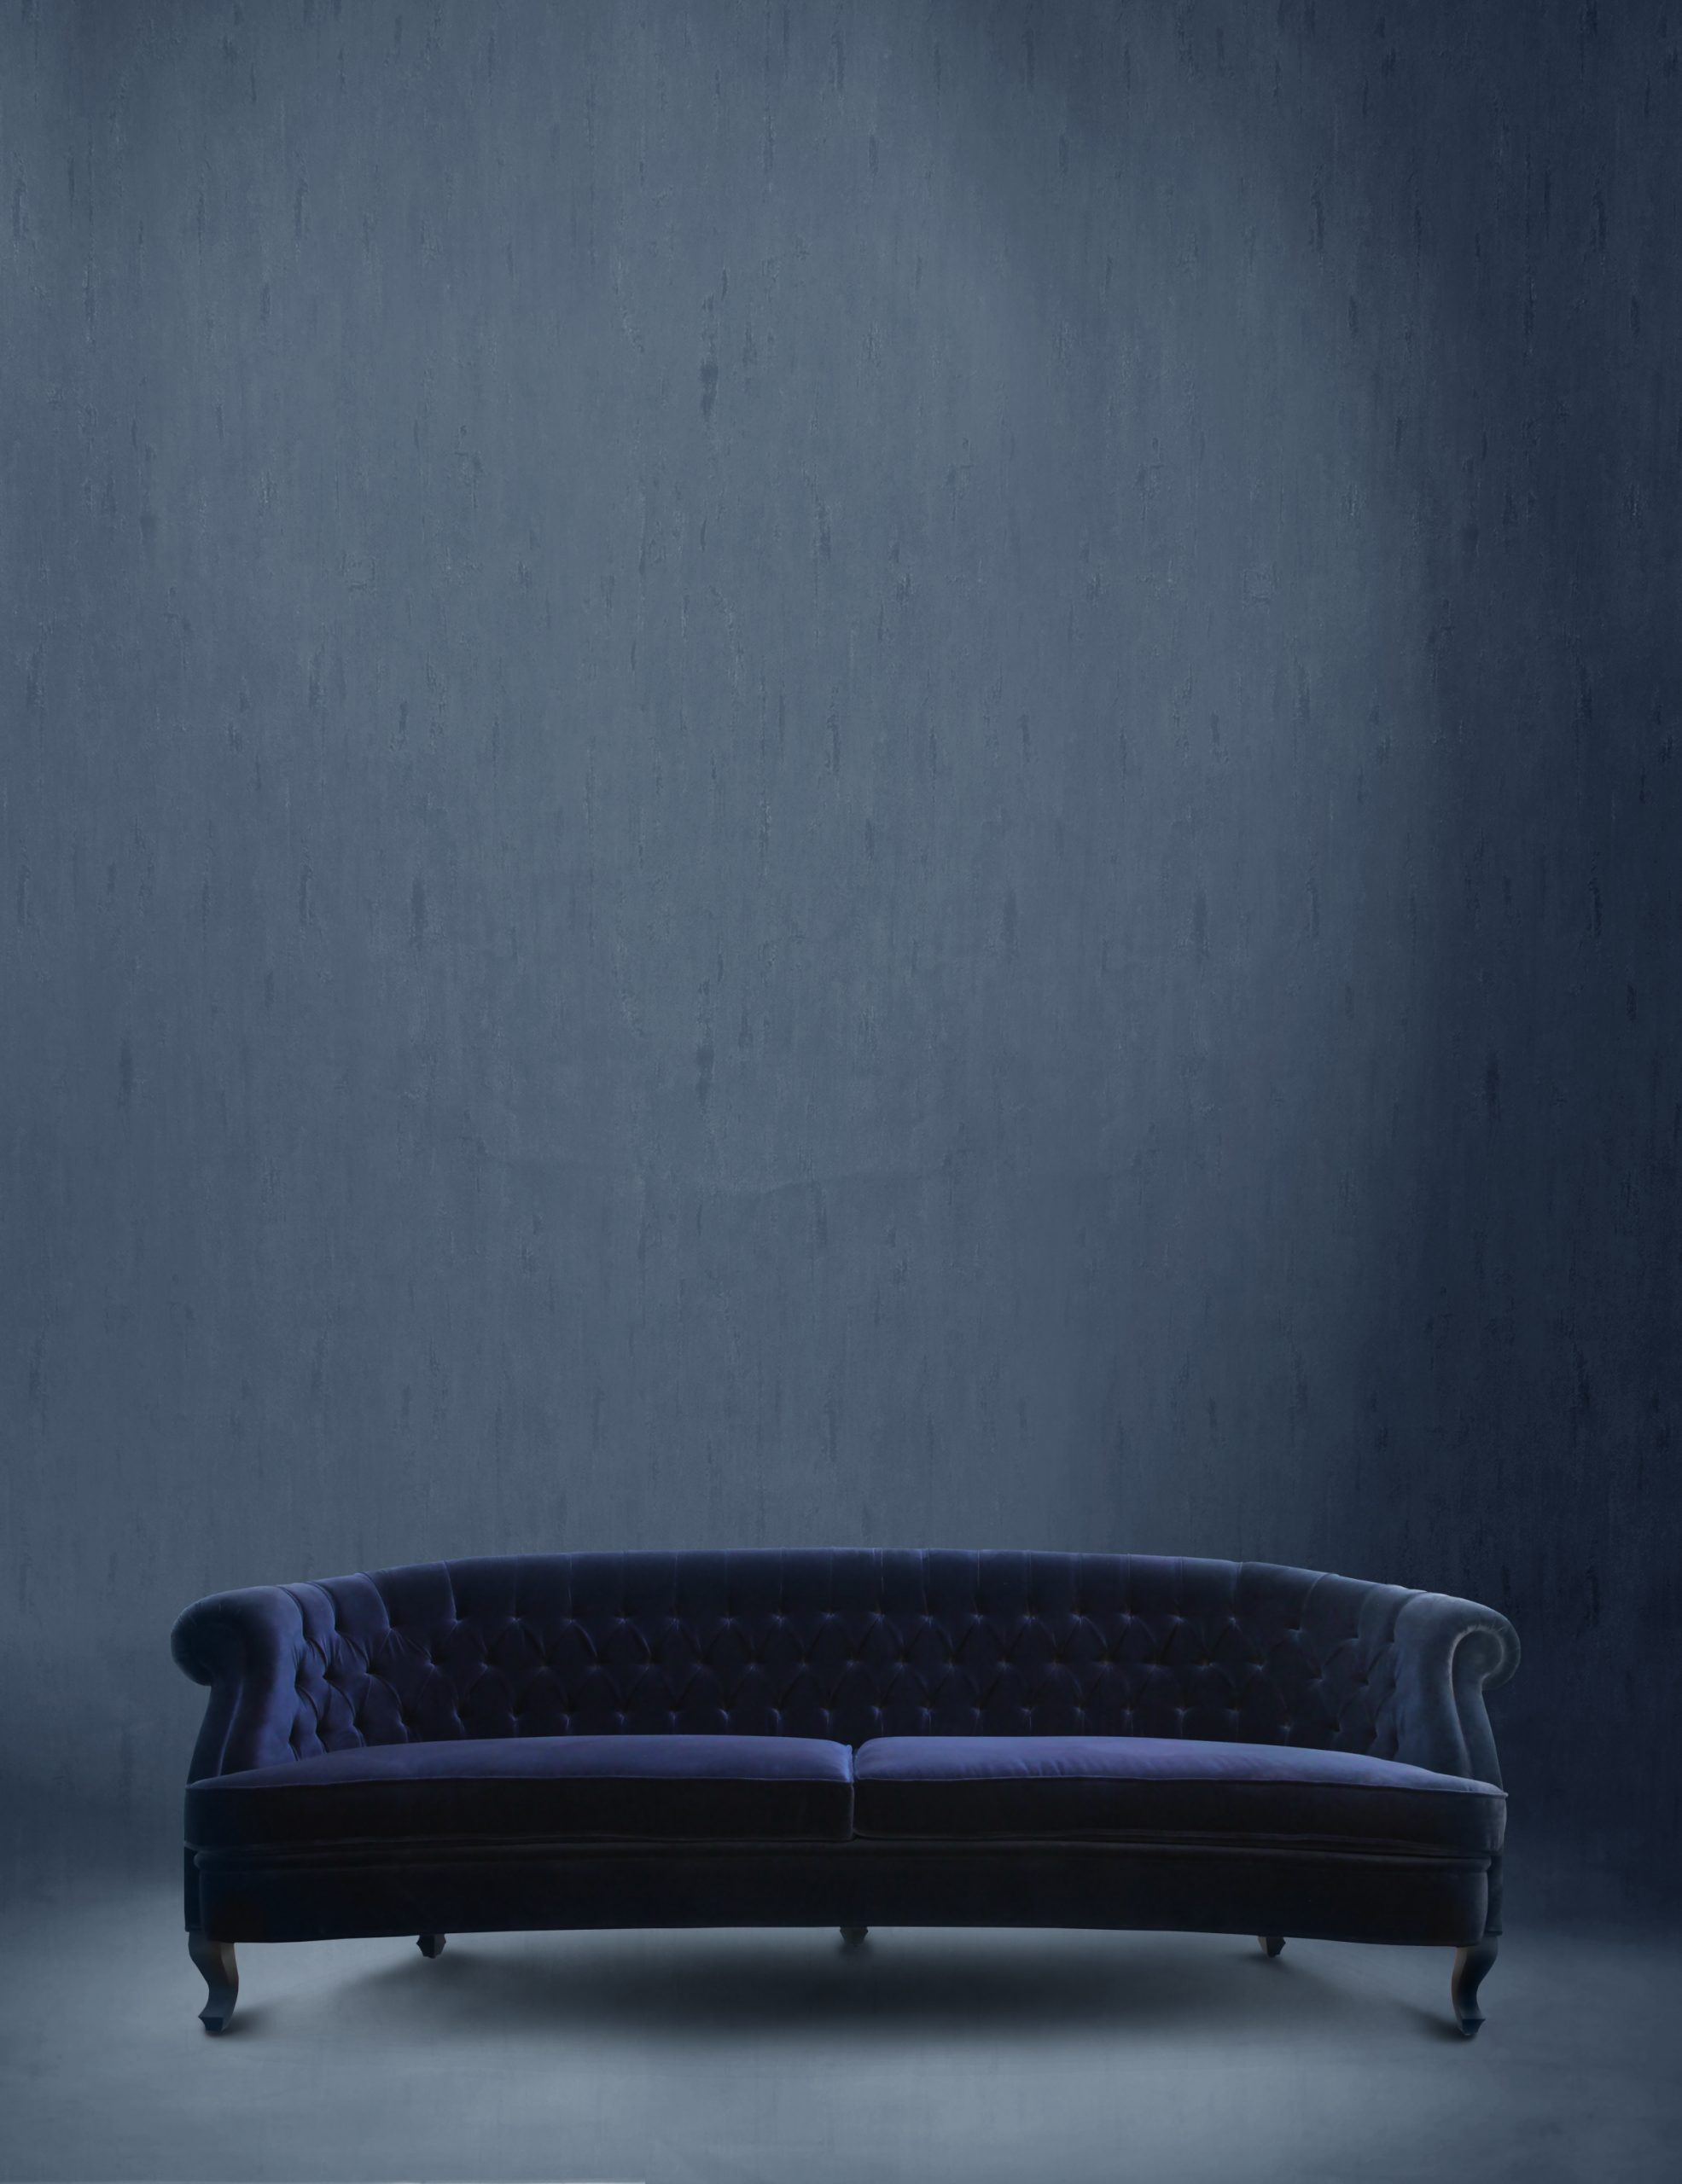 Blue Sofas That Will Refresh Your Home Decor blue sofas Blue Sofas That Will Refresh Your Home Decor maree fundo scaled